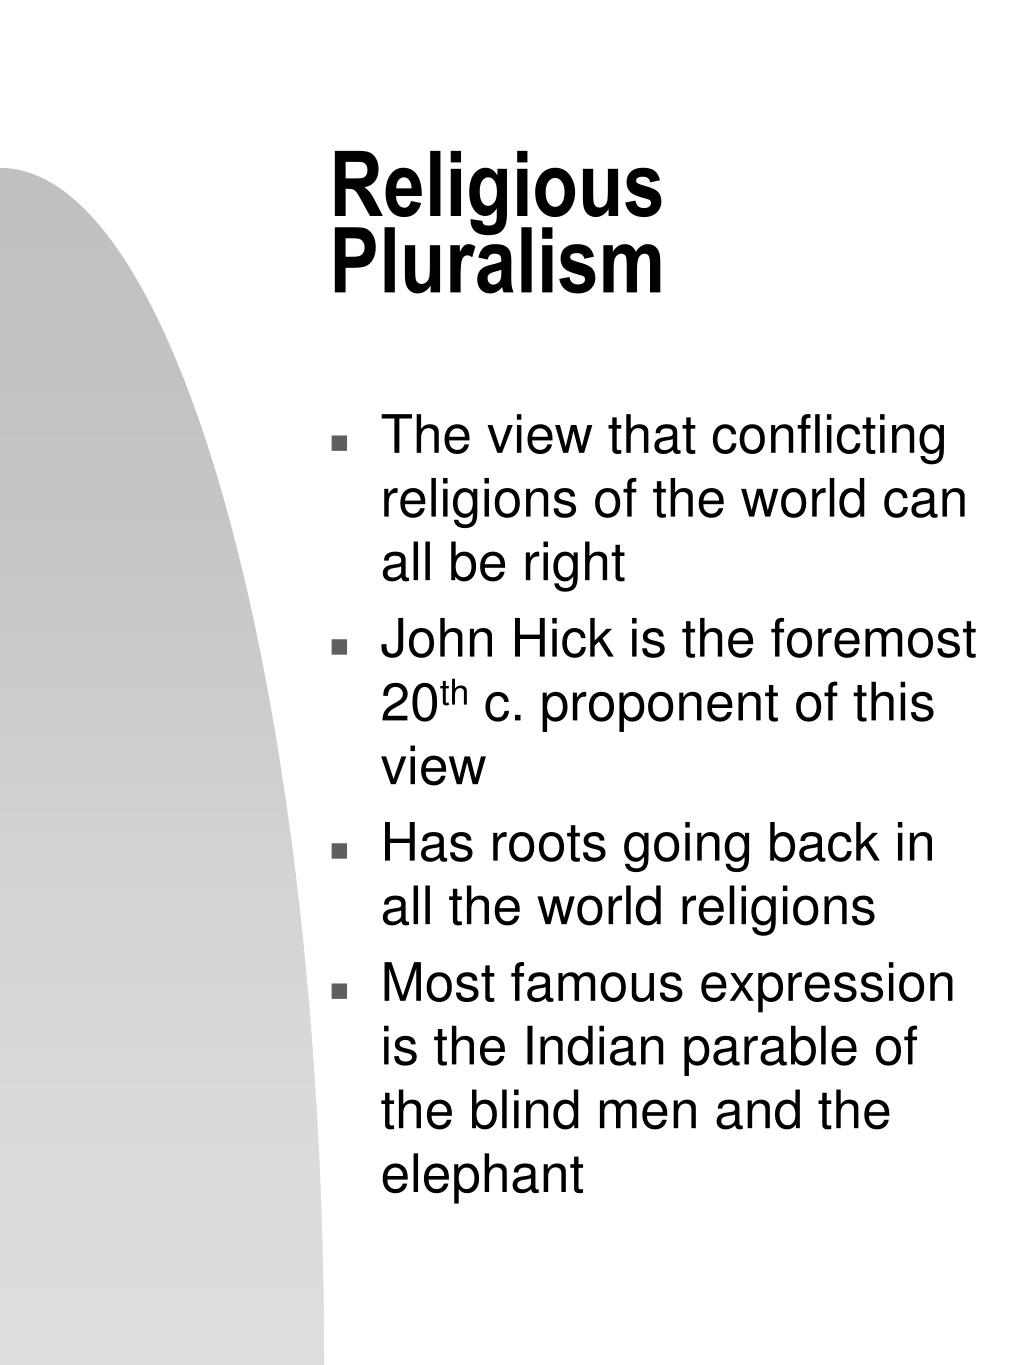 religious pluralism in india Religious pluralism one of the most perceptive analysts of the consequences of pluralism for the christian churches is lesslie newbigin, who is able to draw on his substantial first-hand experience of christian life in india as he reflects on what pluralism means – and does not mean – for contemporary christianity.